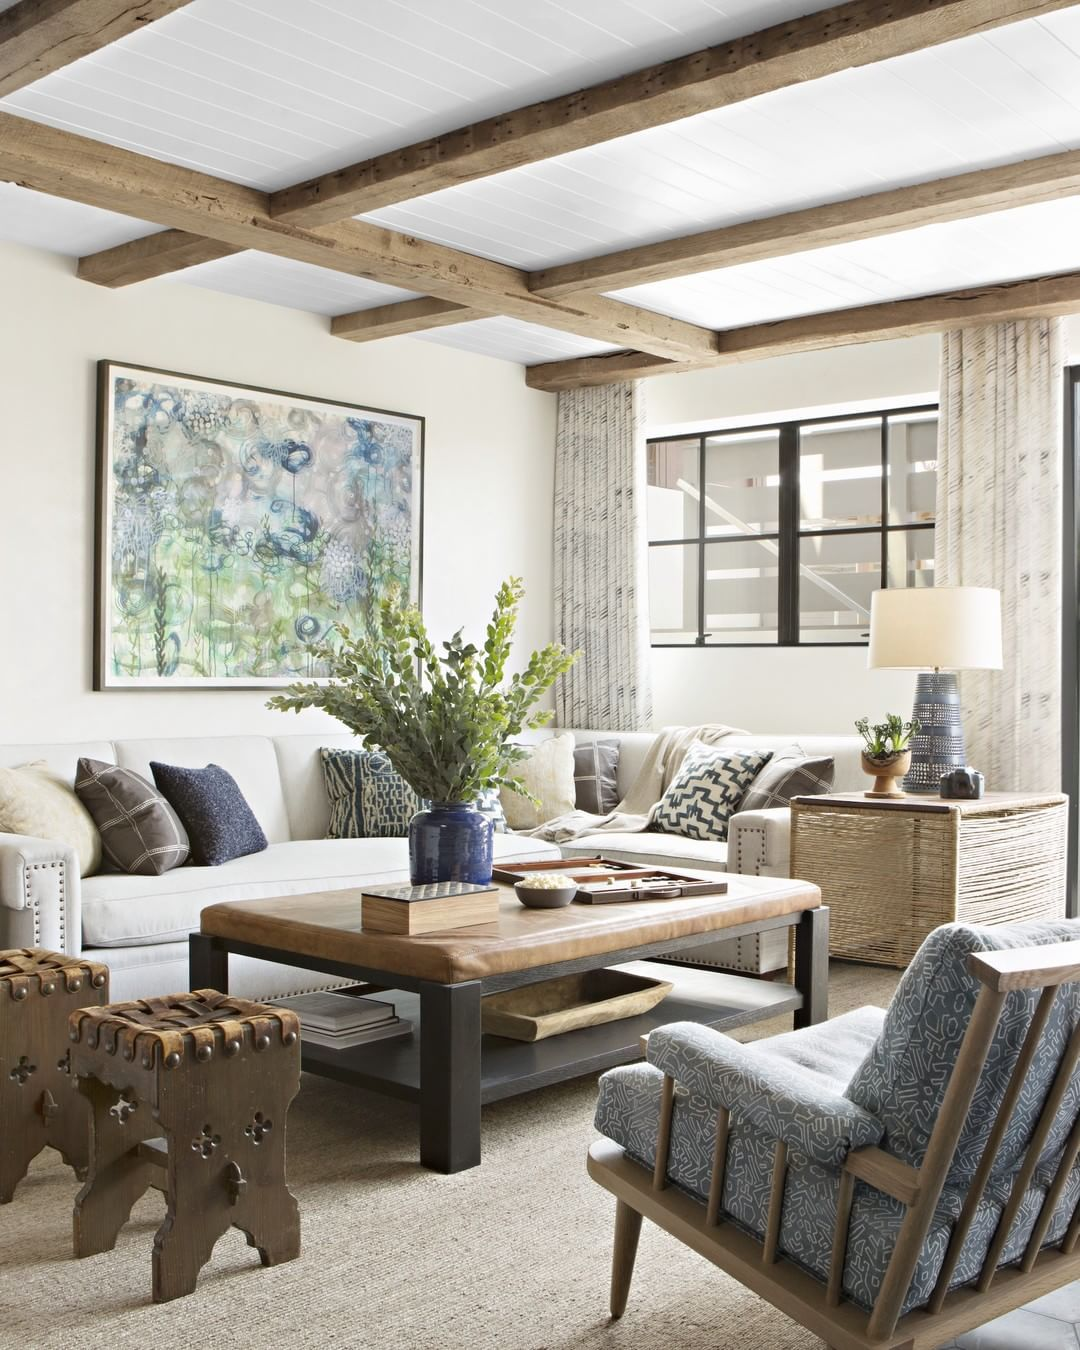 Beach chic living room with weathered wood ceiling beams and coastal ...